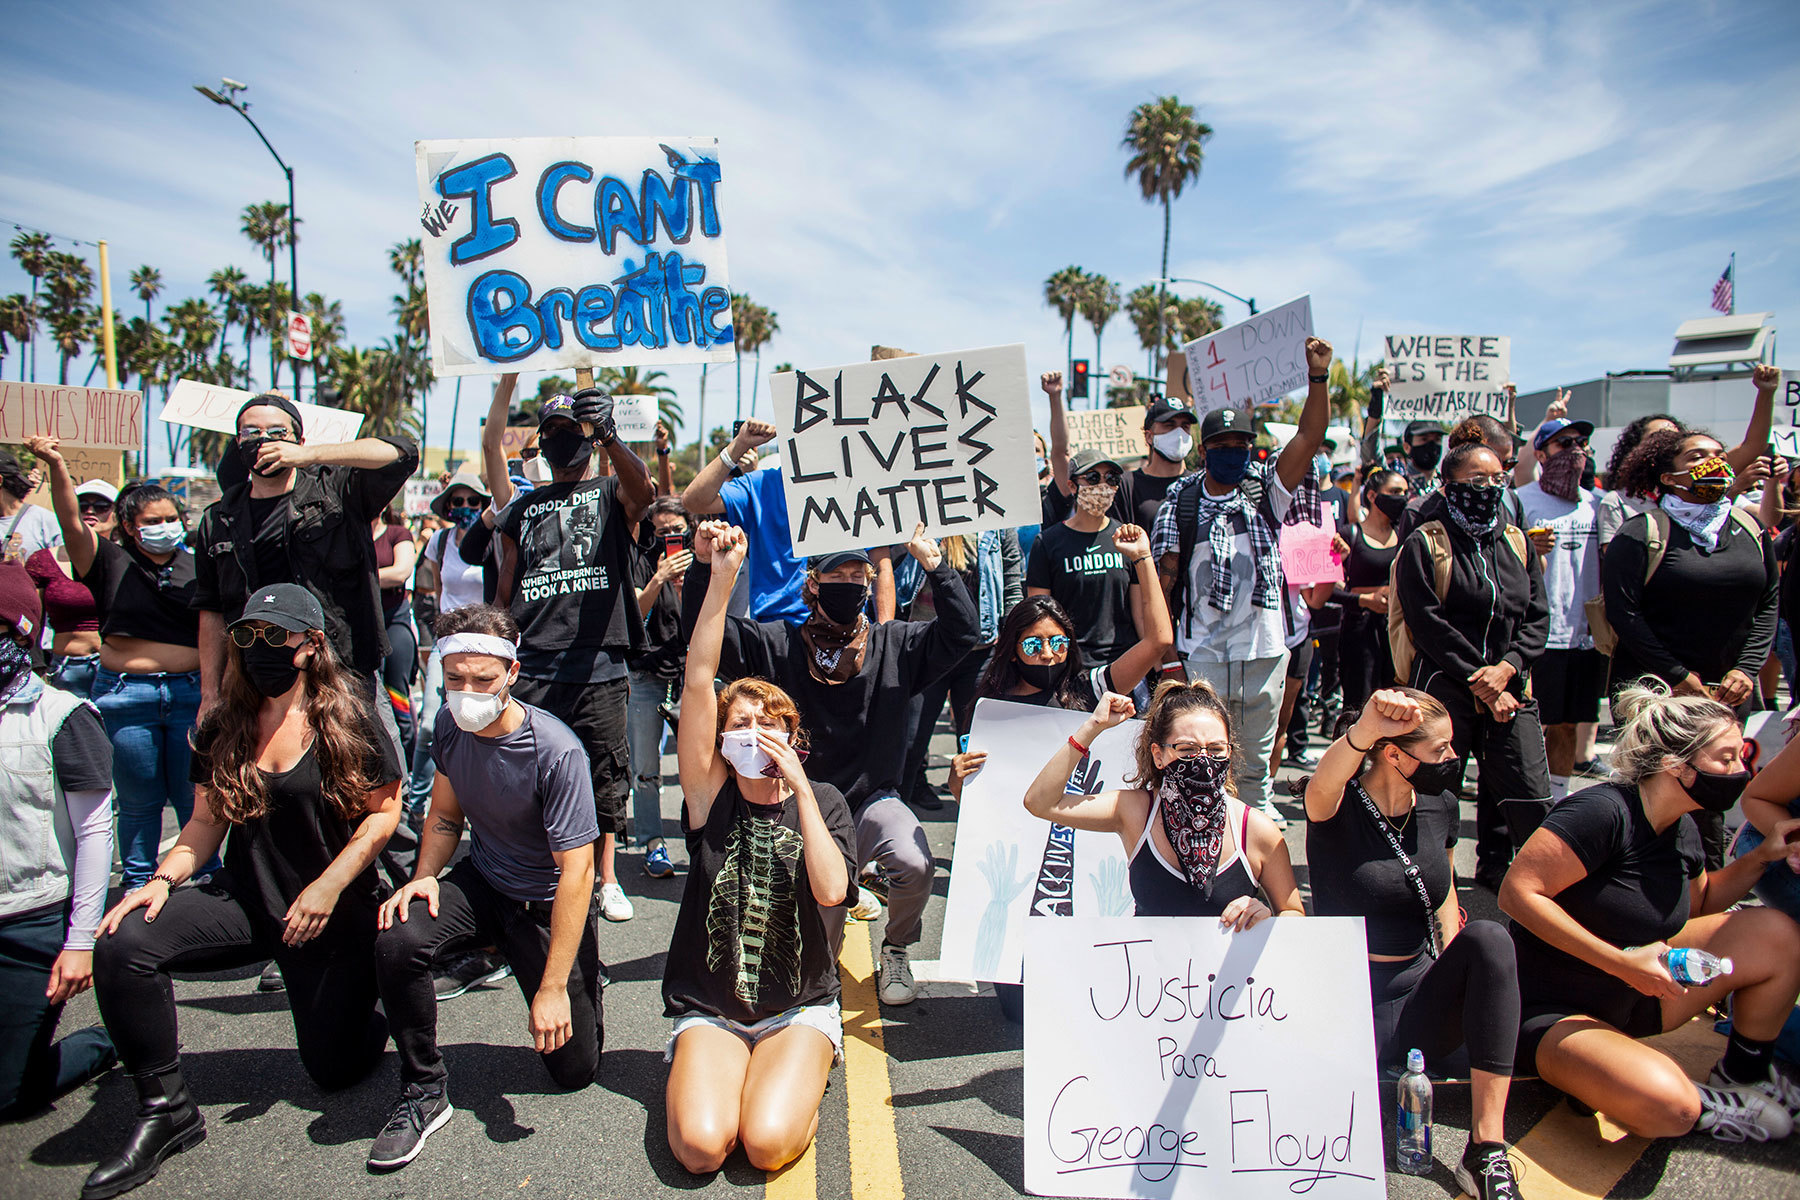 Protesters march in the streets of Santa Monica, California Sunday, May 31, 2020. The protests against police brutality were sparked by the death of George Floyd while in police custody in Minneapolis.